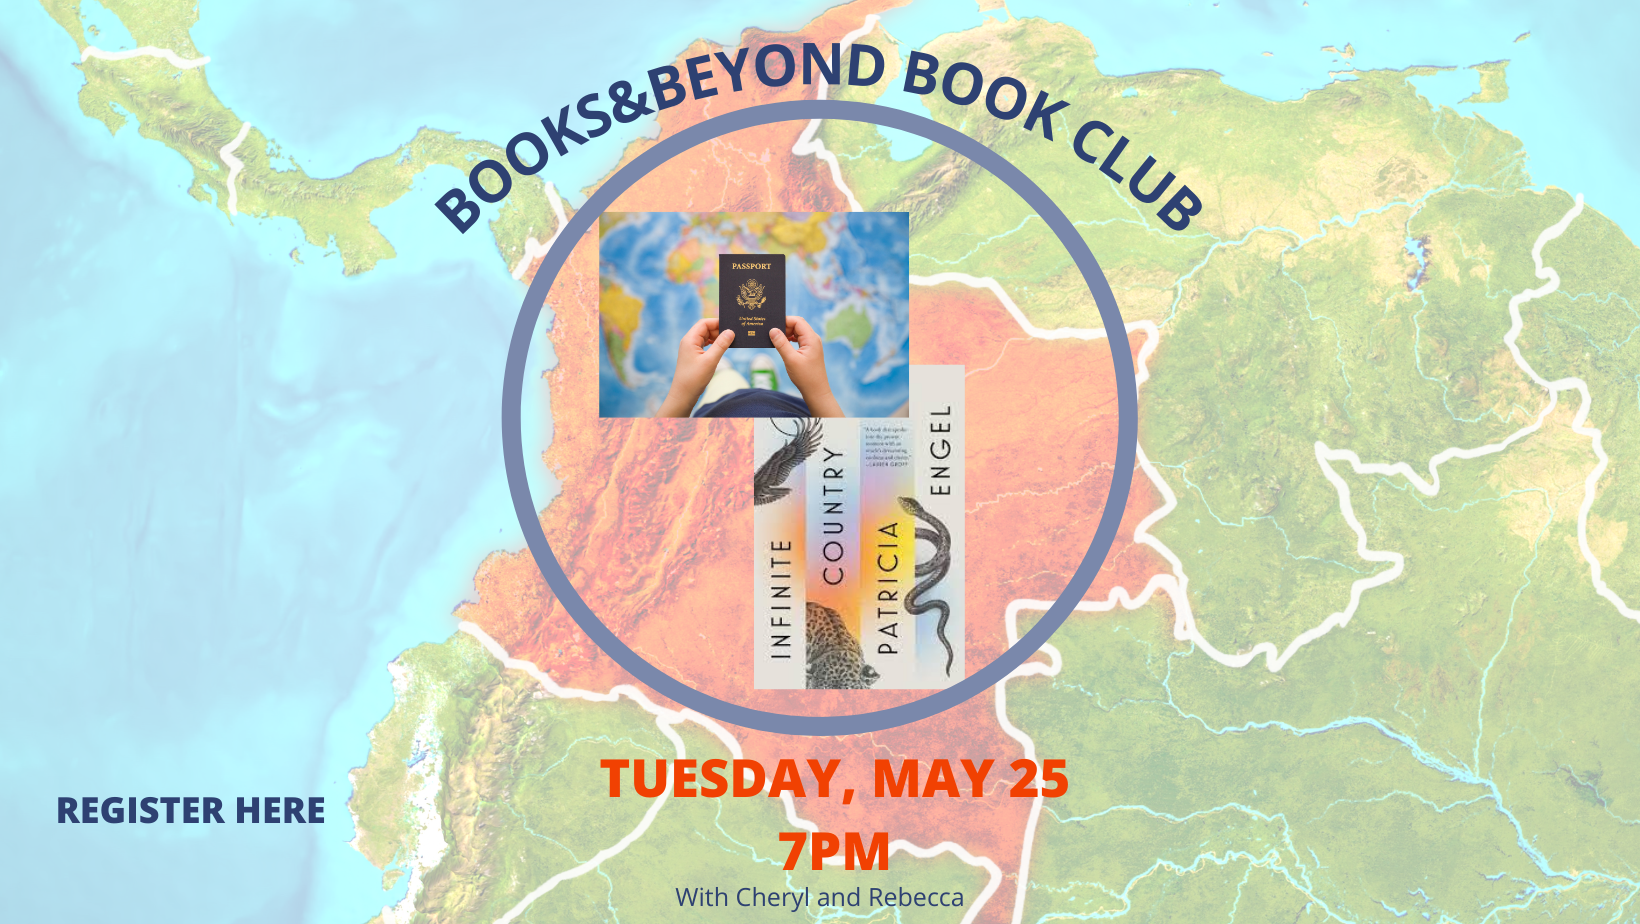 CAROUSEL BOOKS&BEYOND Infinite Country 5.25.21.png